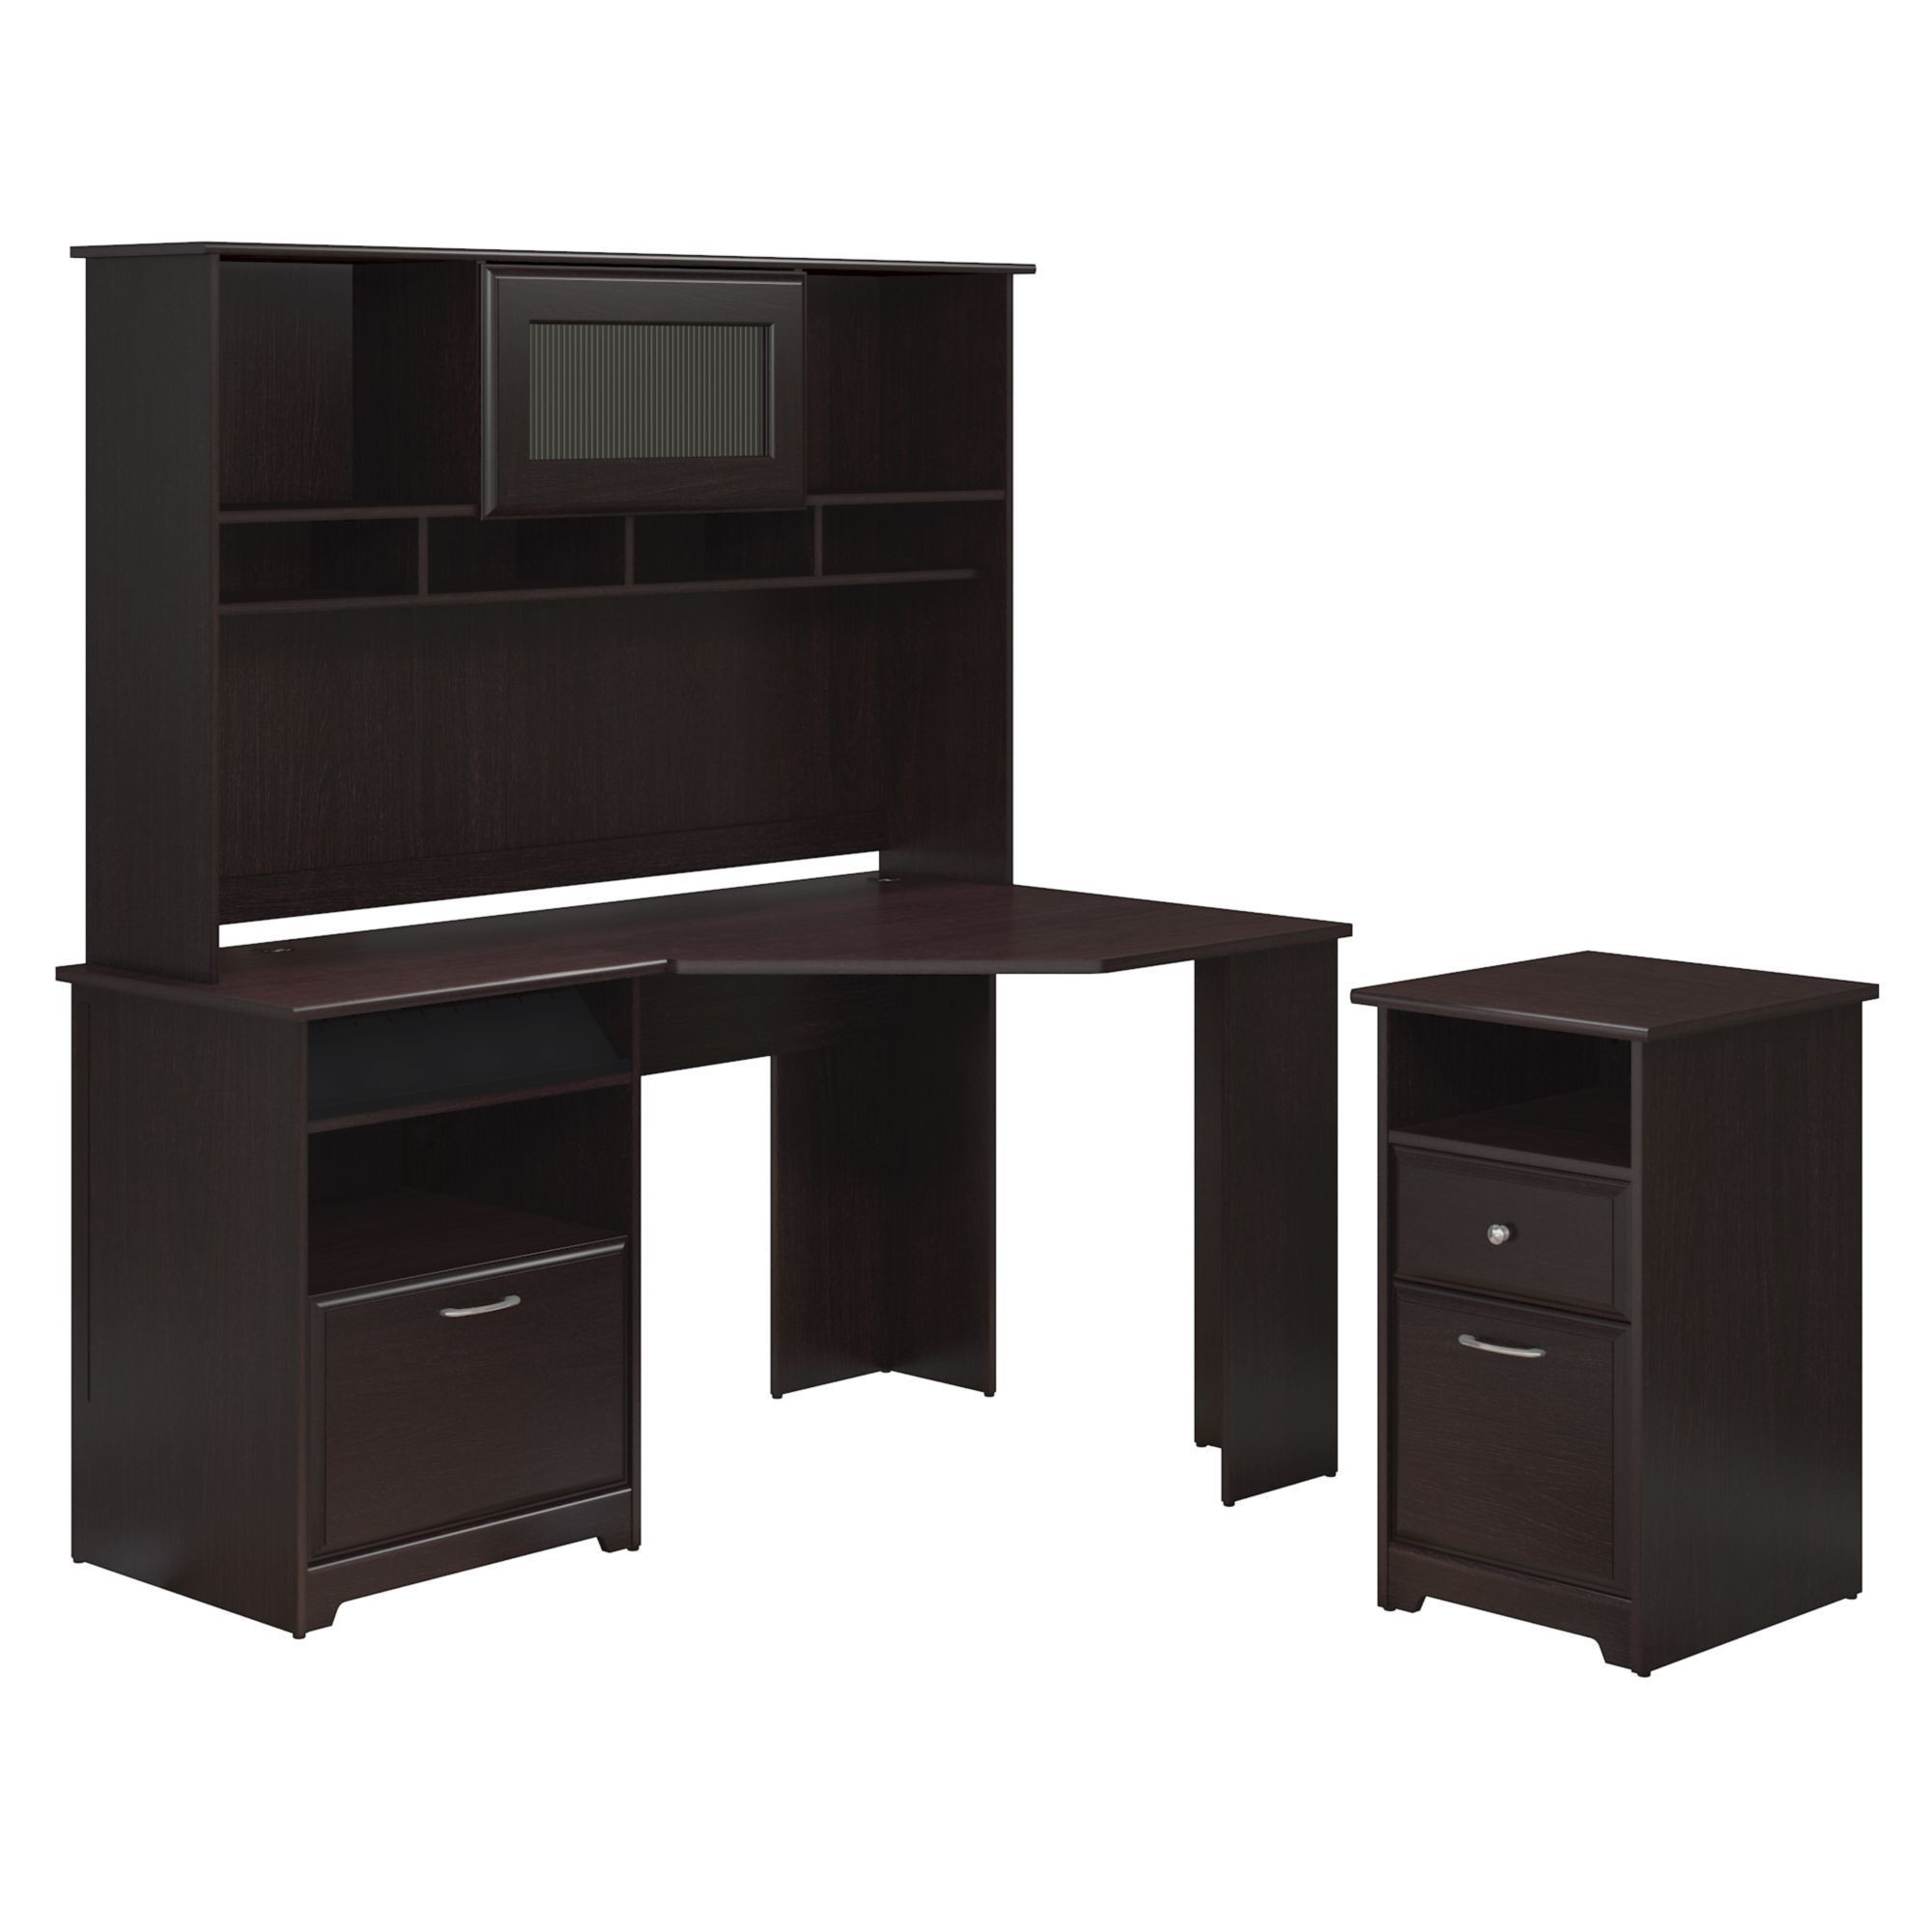 target hutch glossy brown appealing staples corner black drawers home desk decorating furniture desks awesome and elegant for inexpensive kids ideas computer cute with l using